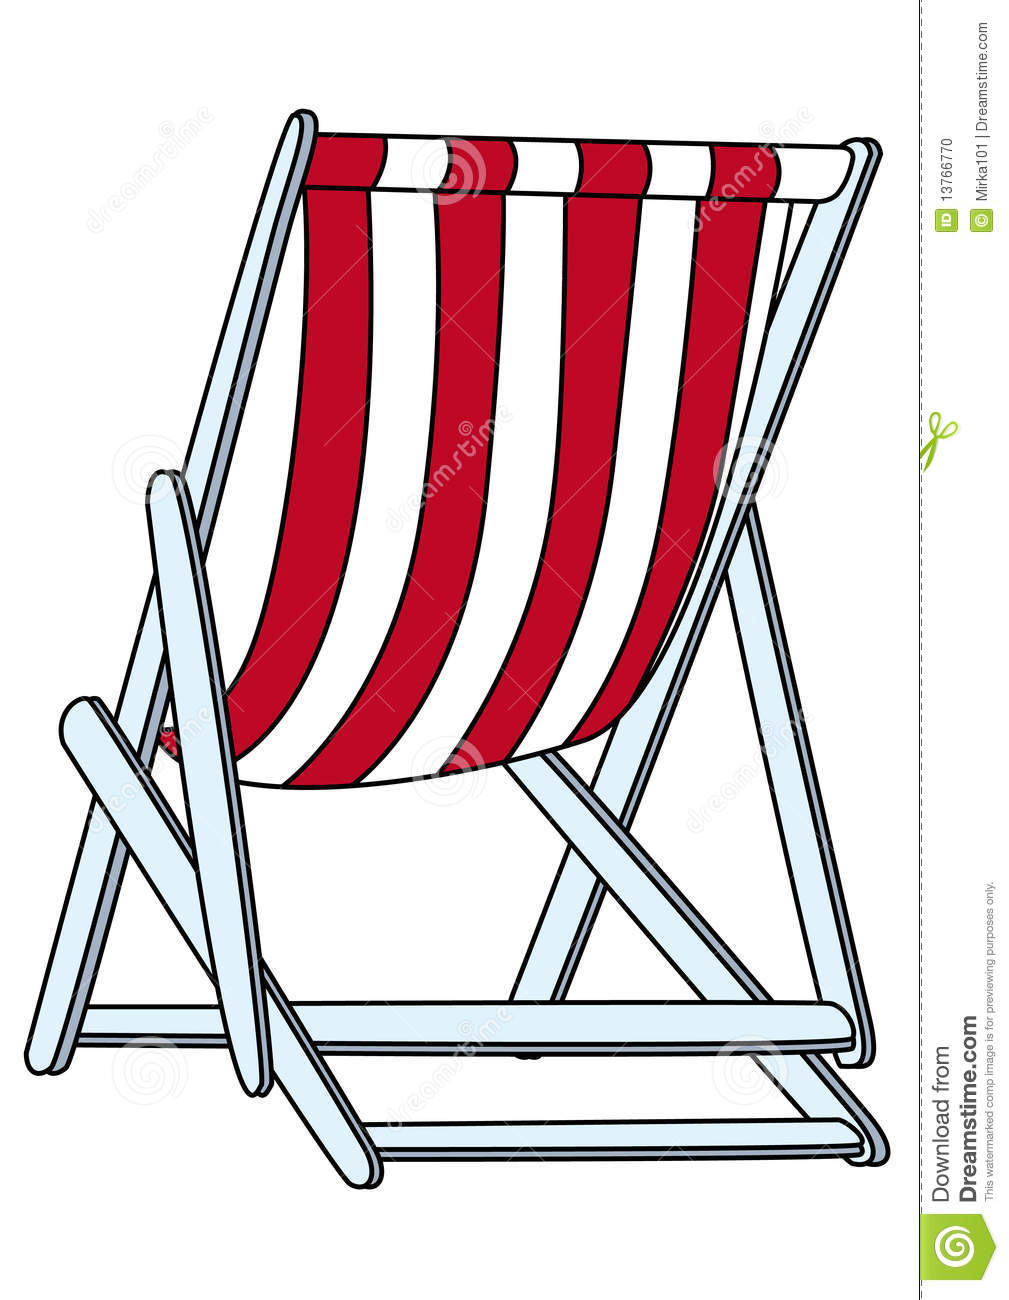 deckchair illustration stock photo image 13766770. Black Bedroom Furniture Sets. Home Design Ideas